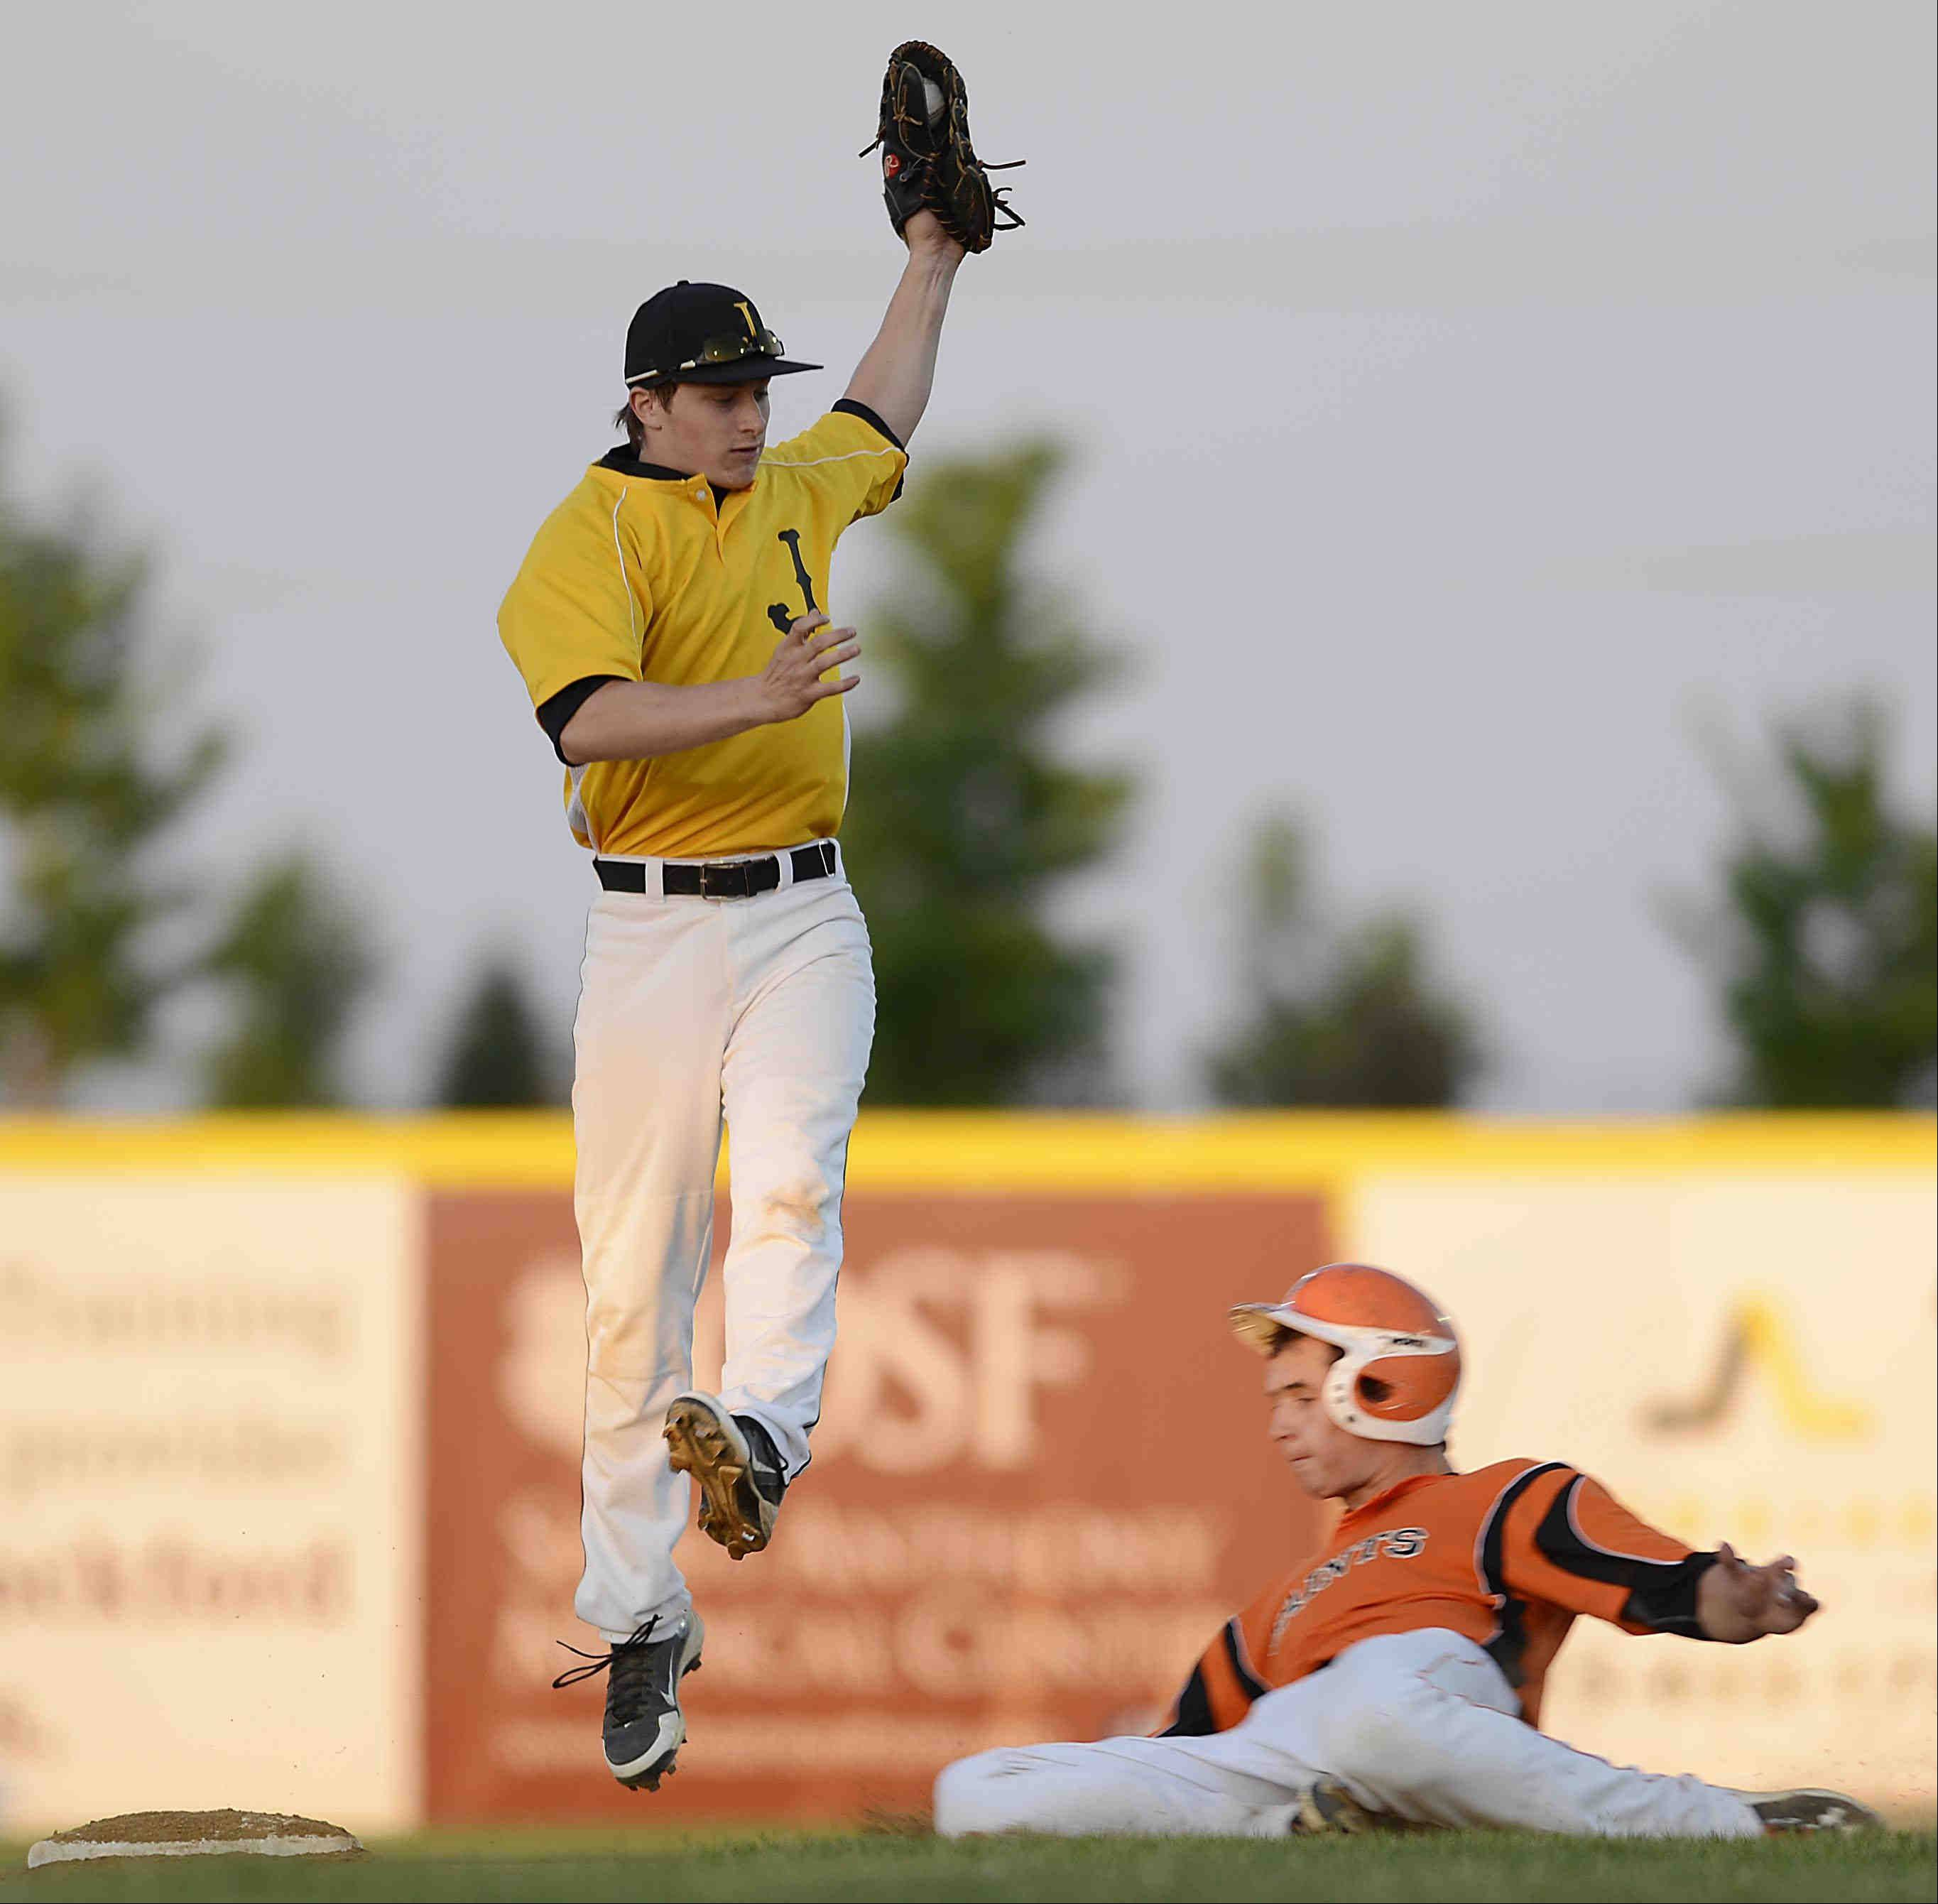 Jacobs' Grant Kale jumps to catch a high throw to second as St. Charles East's Brian Sobieski steals the bag Monday in the Class 4A supersectional at RiverHawks Stadium in Rockford.